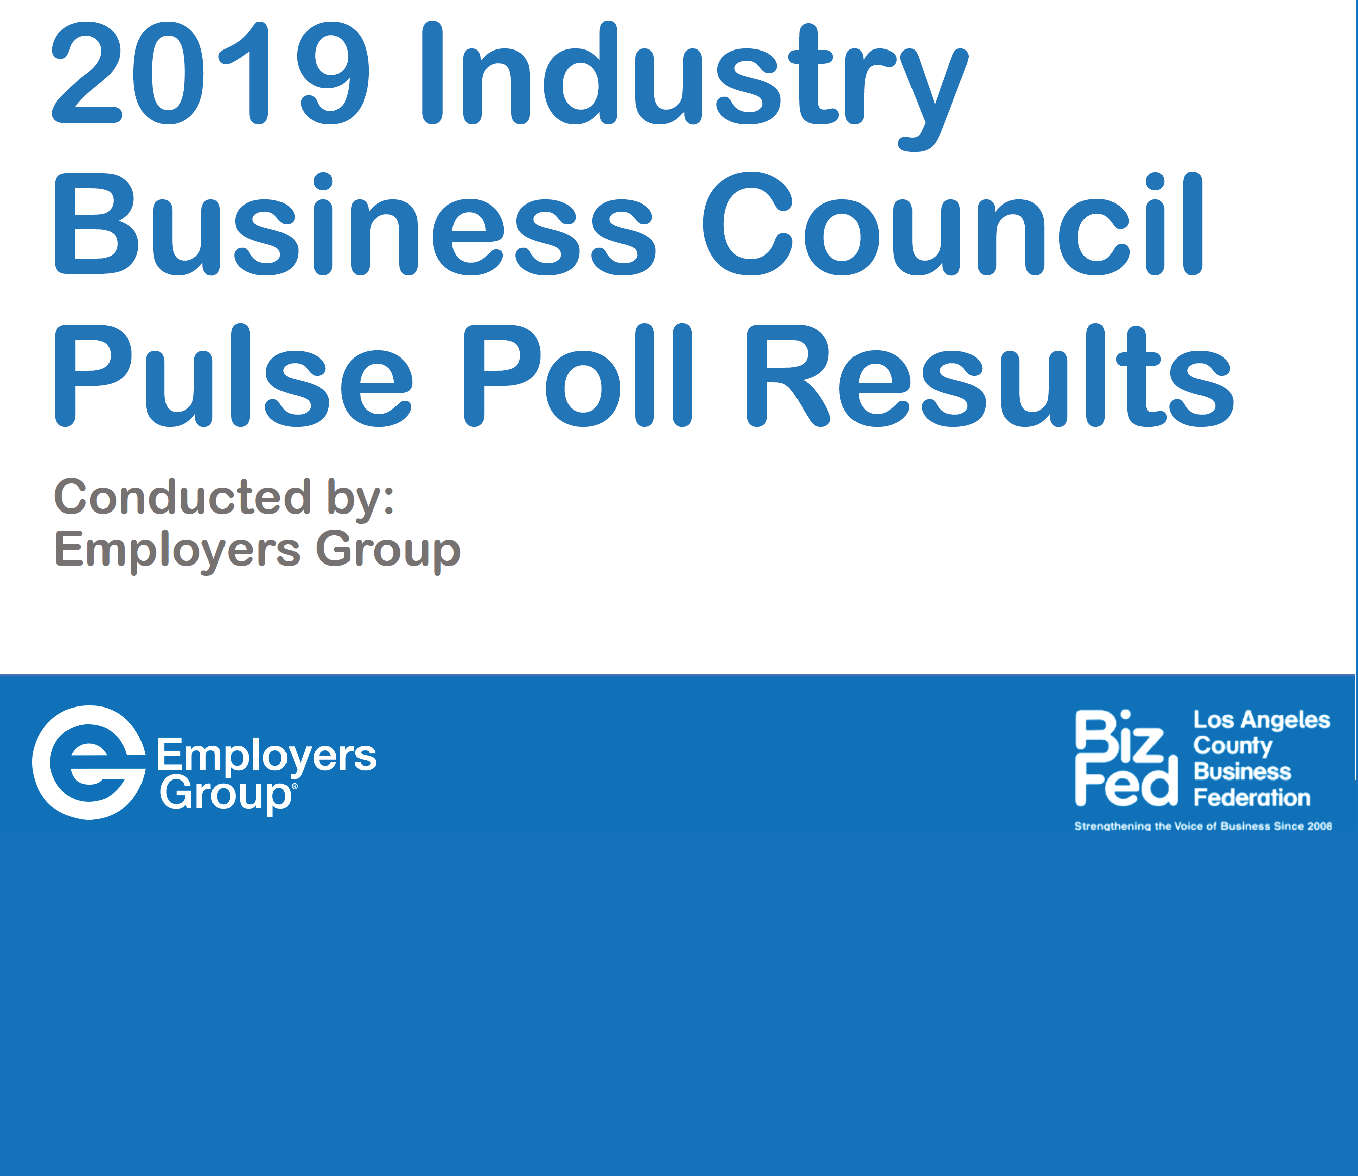 2019 Industry Business Council Pulse Poll Results